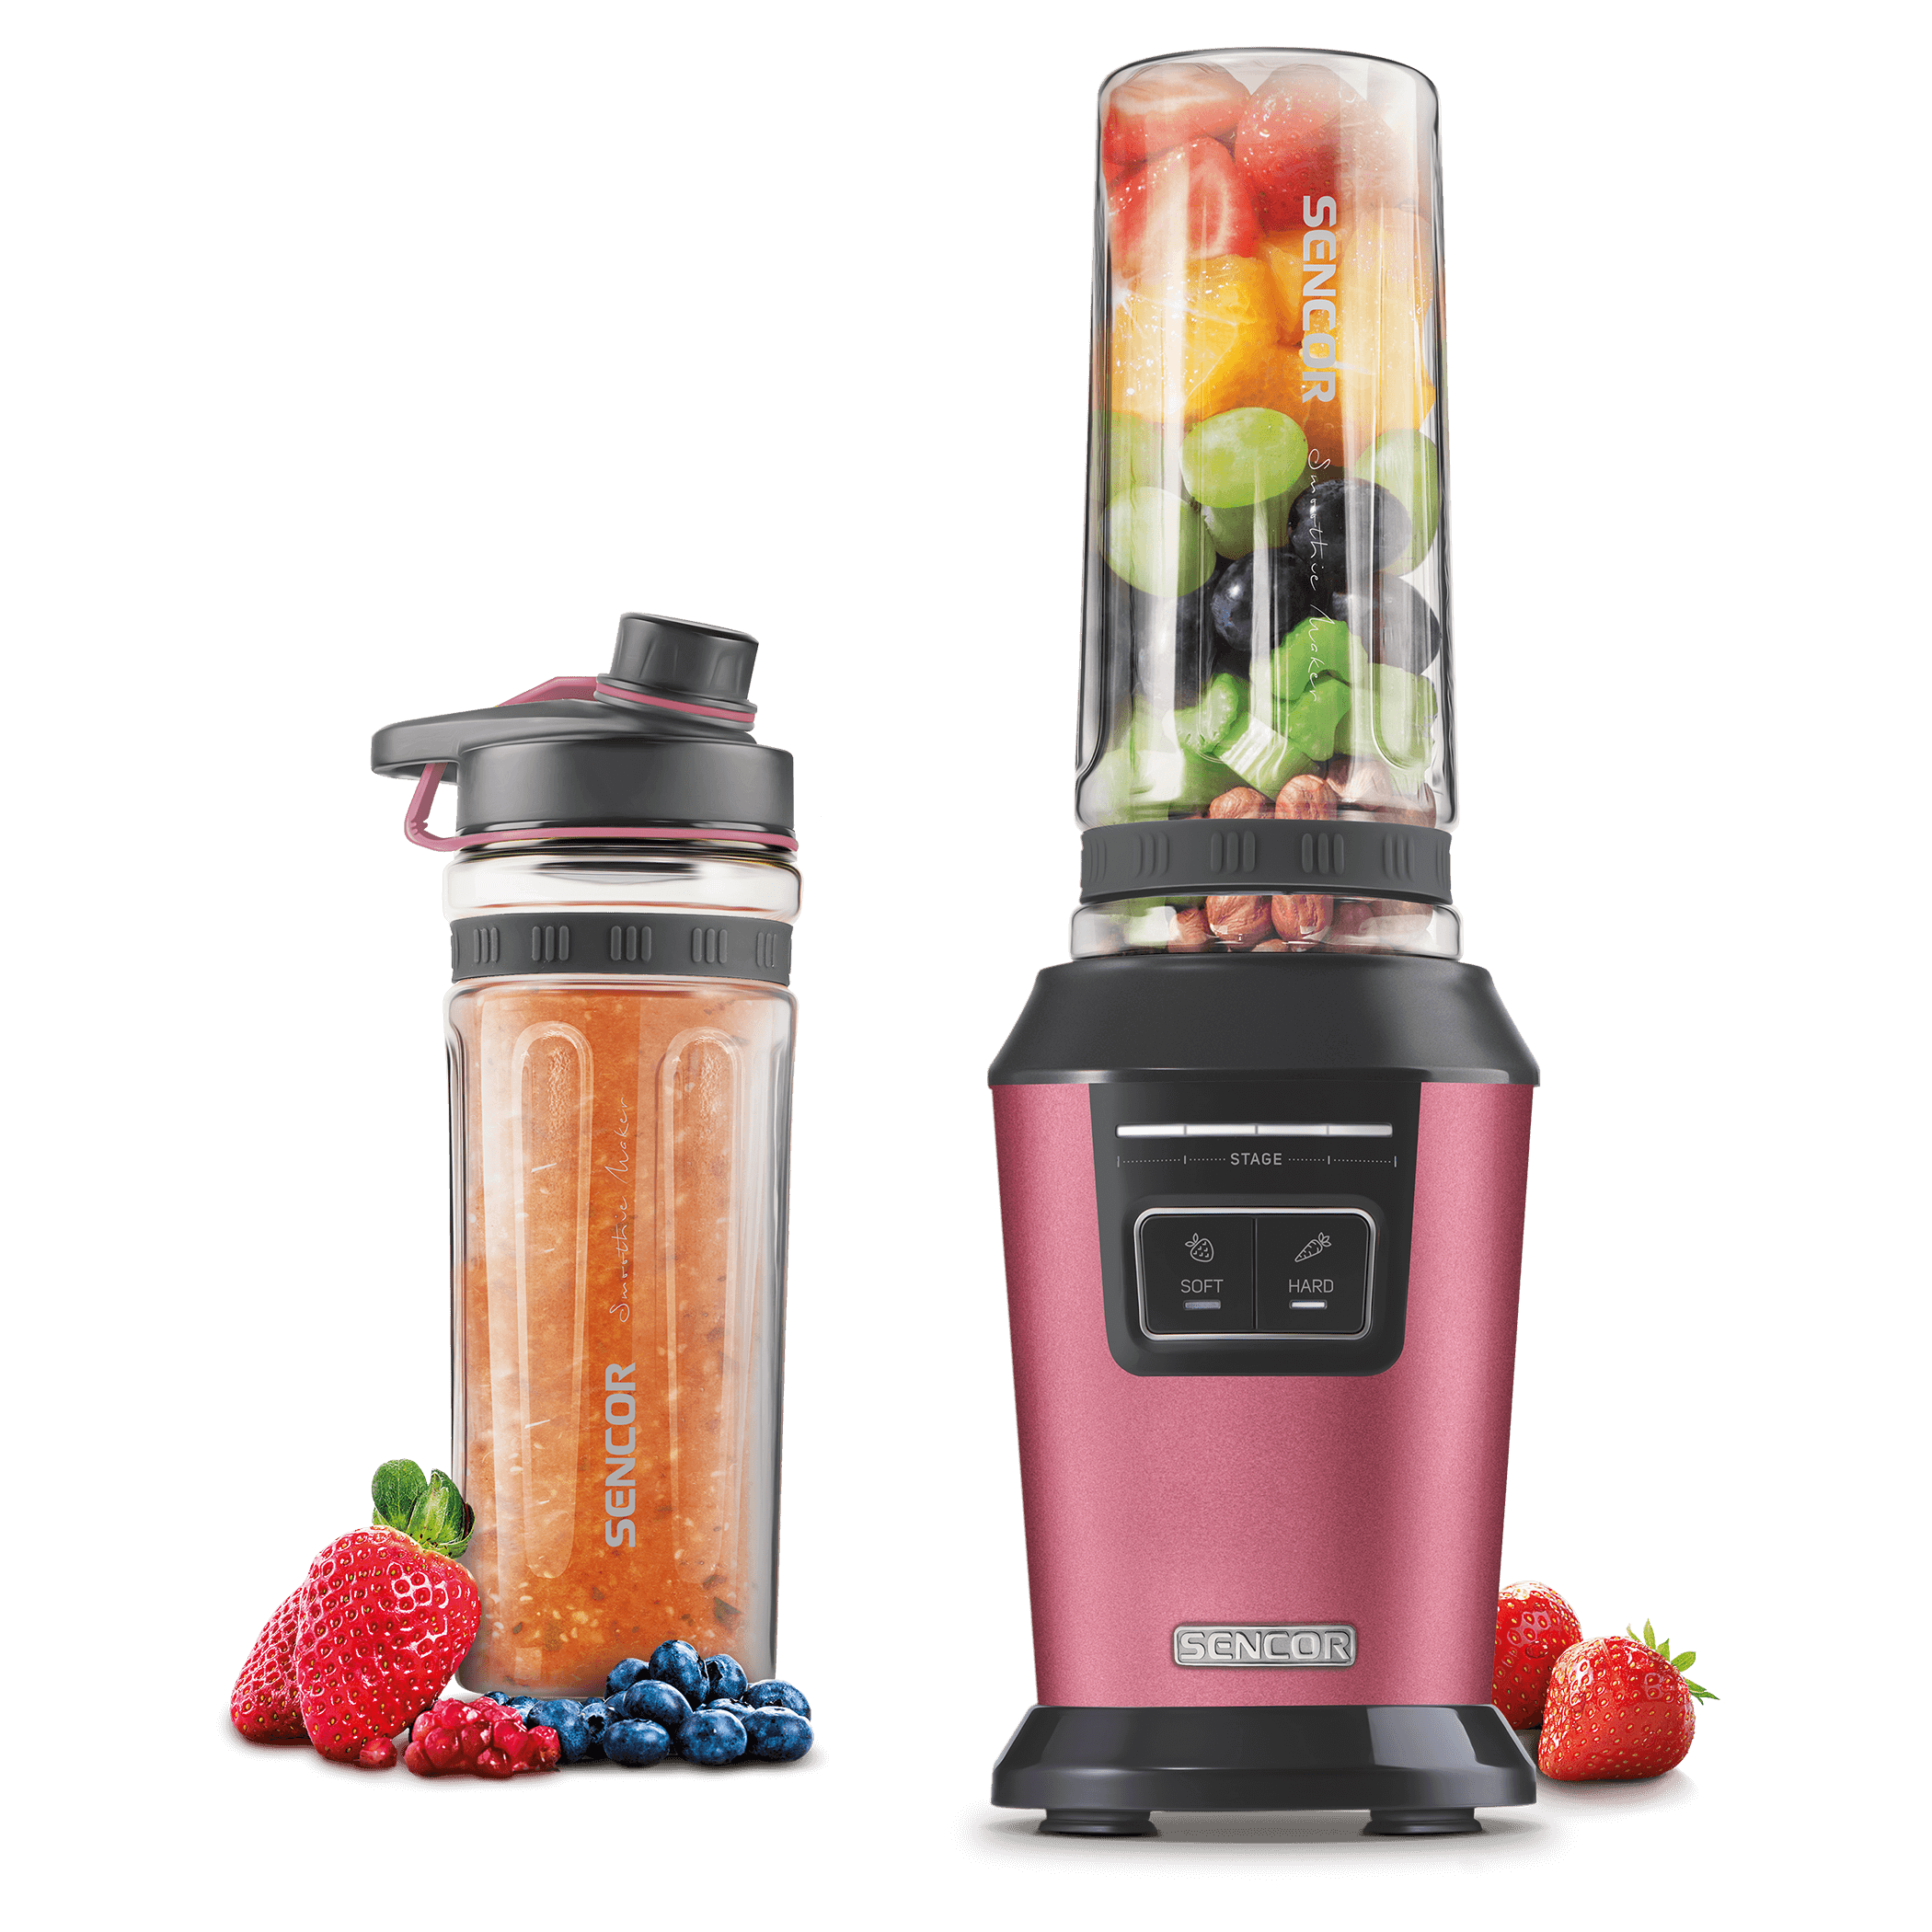 SBL_7074RD_Smoothie_maker_SENCOR.png